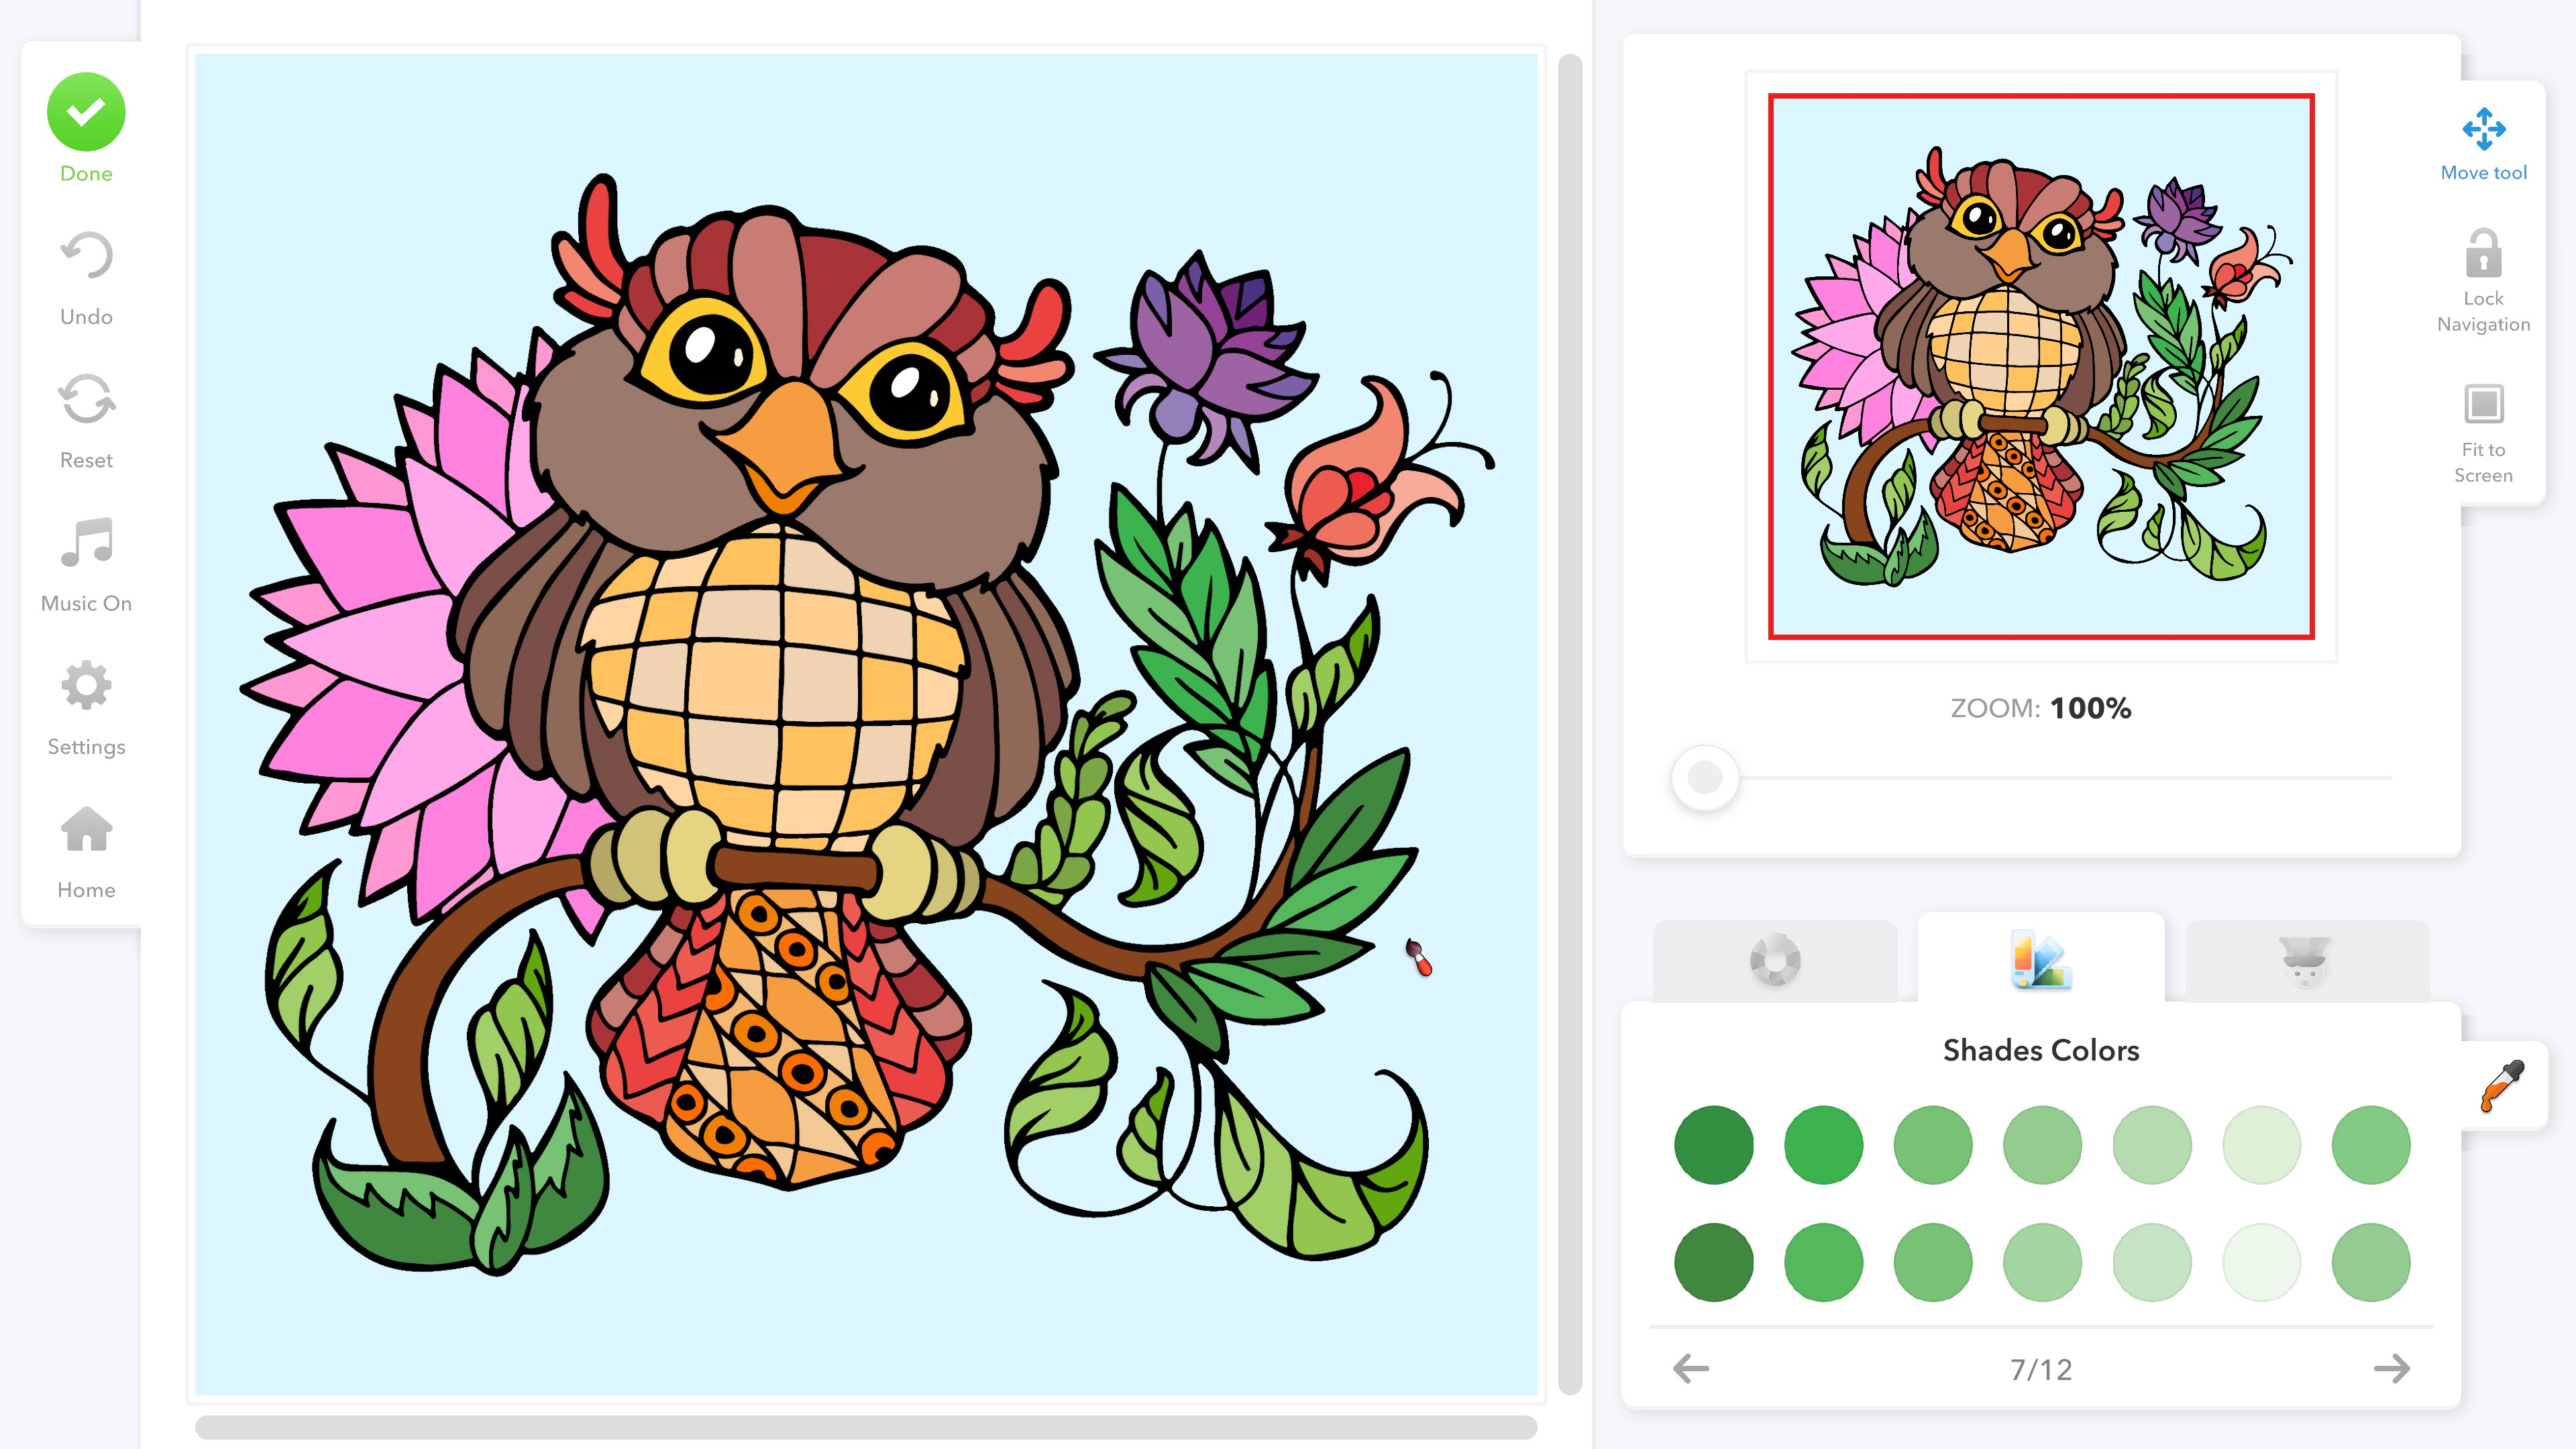 Coloring Book for Adults. A colored drawing of an owl. A shades color palette is visible in the bottom right showing 14 shades of green.